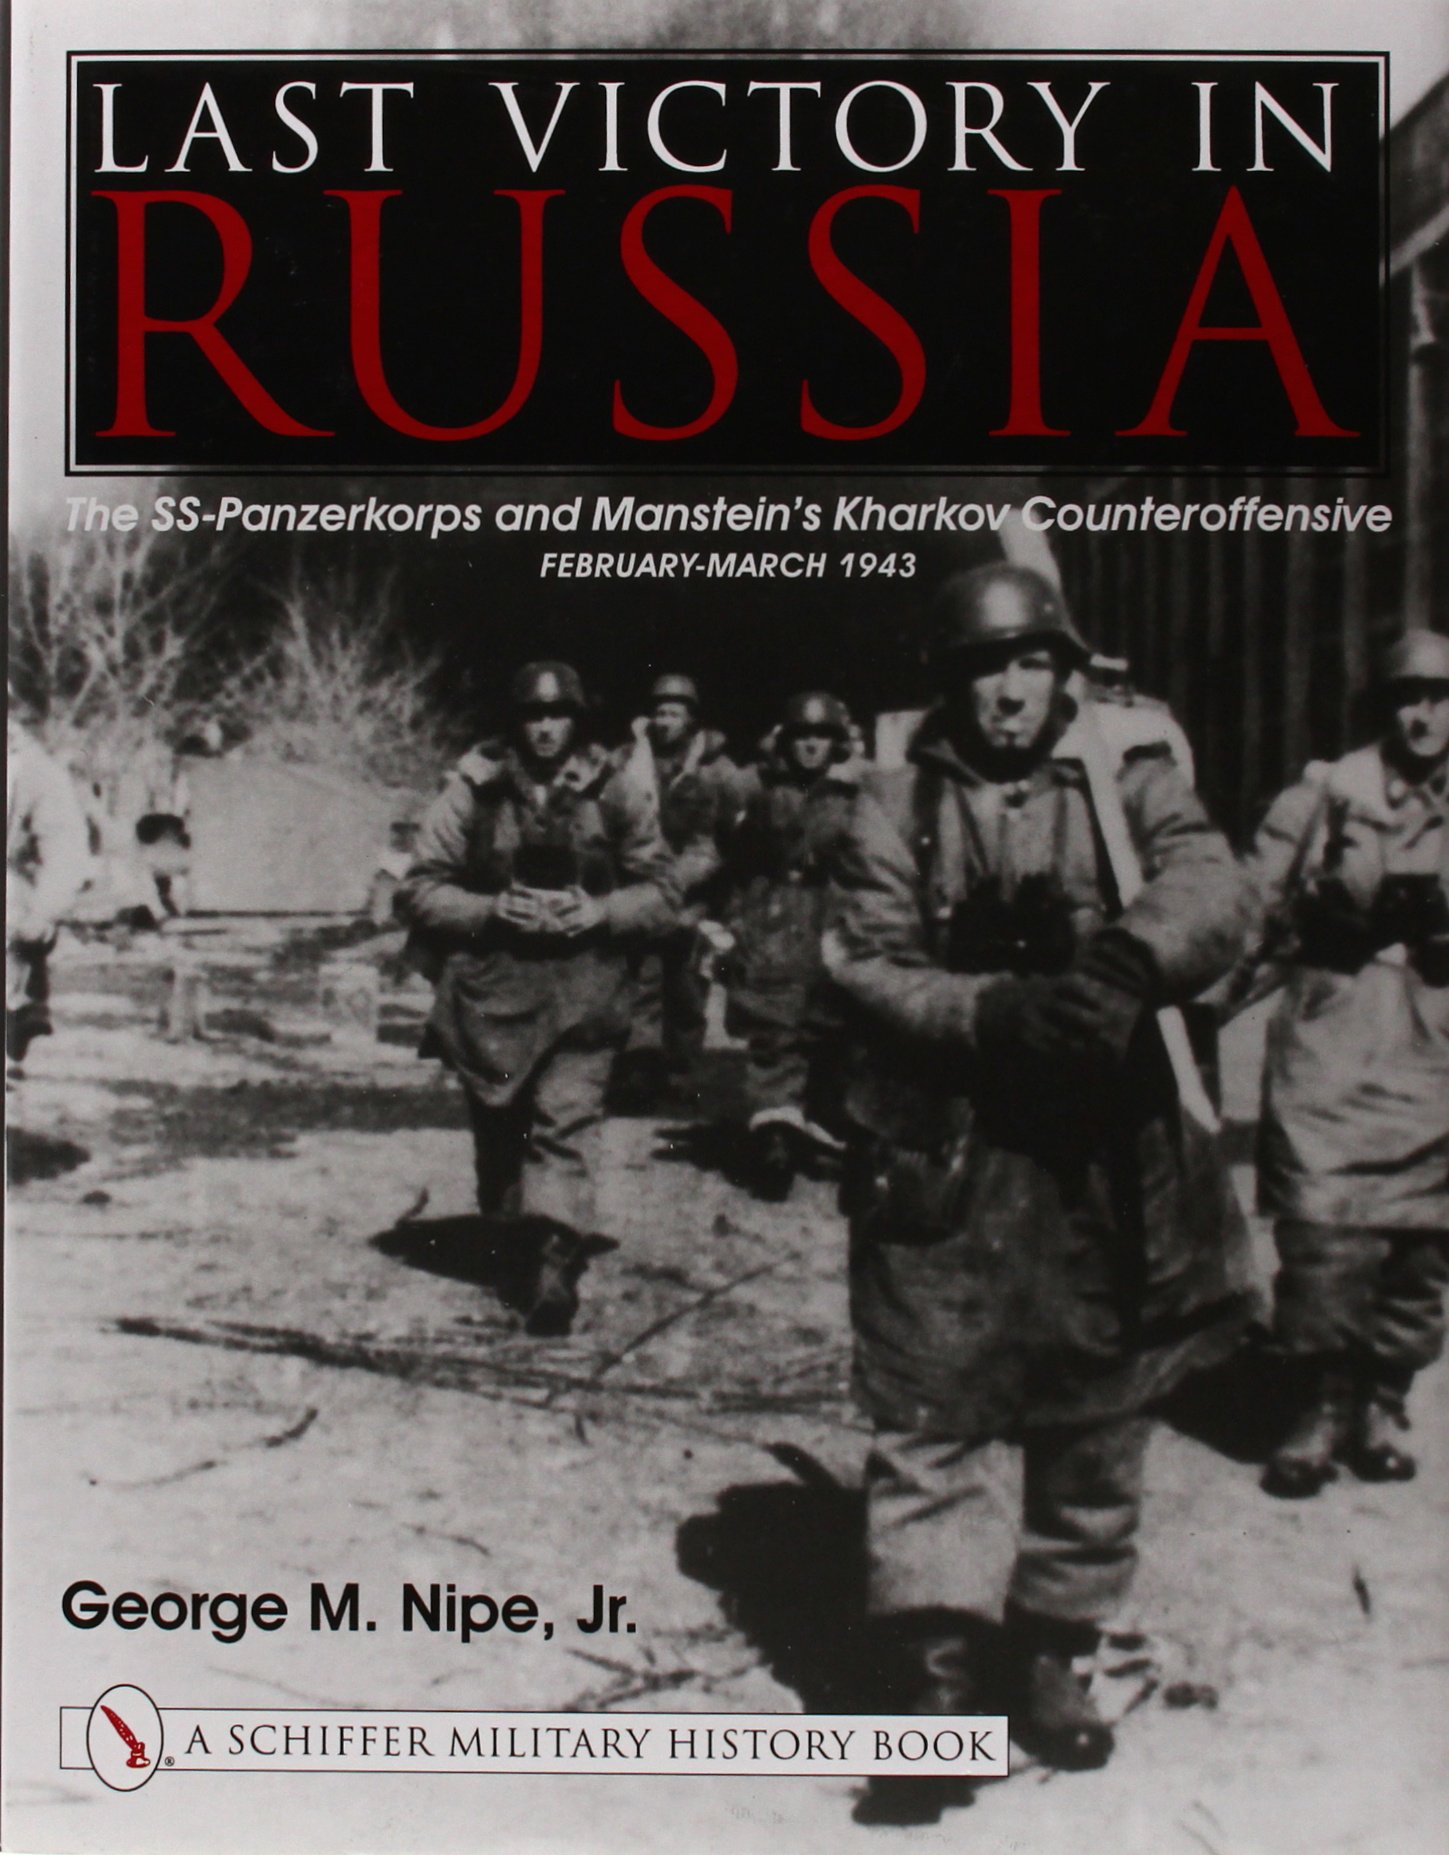 Download Last Victory in Russia: The SS-Panzerkorps and Manstein's Kharkov Counteroffensive, February-March 1943 (Schiffer Military History Book) pdf